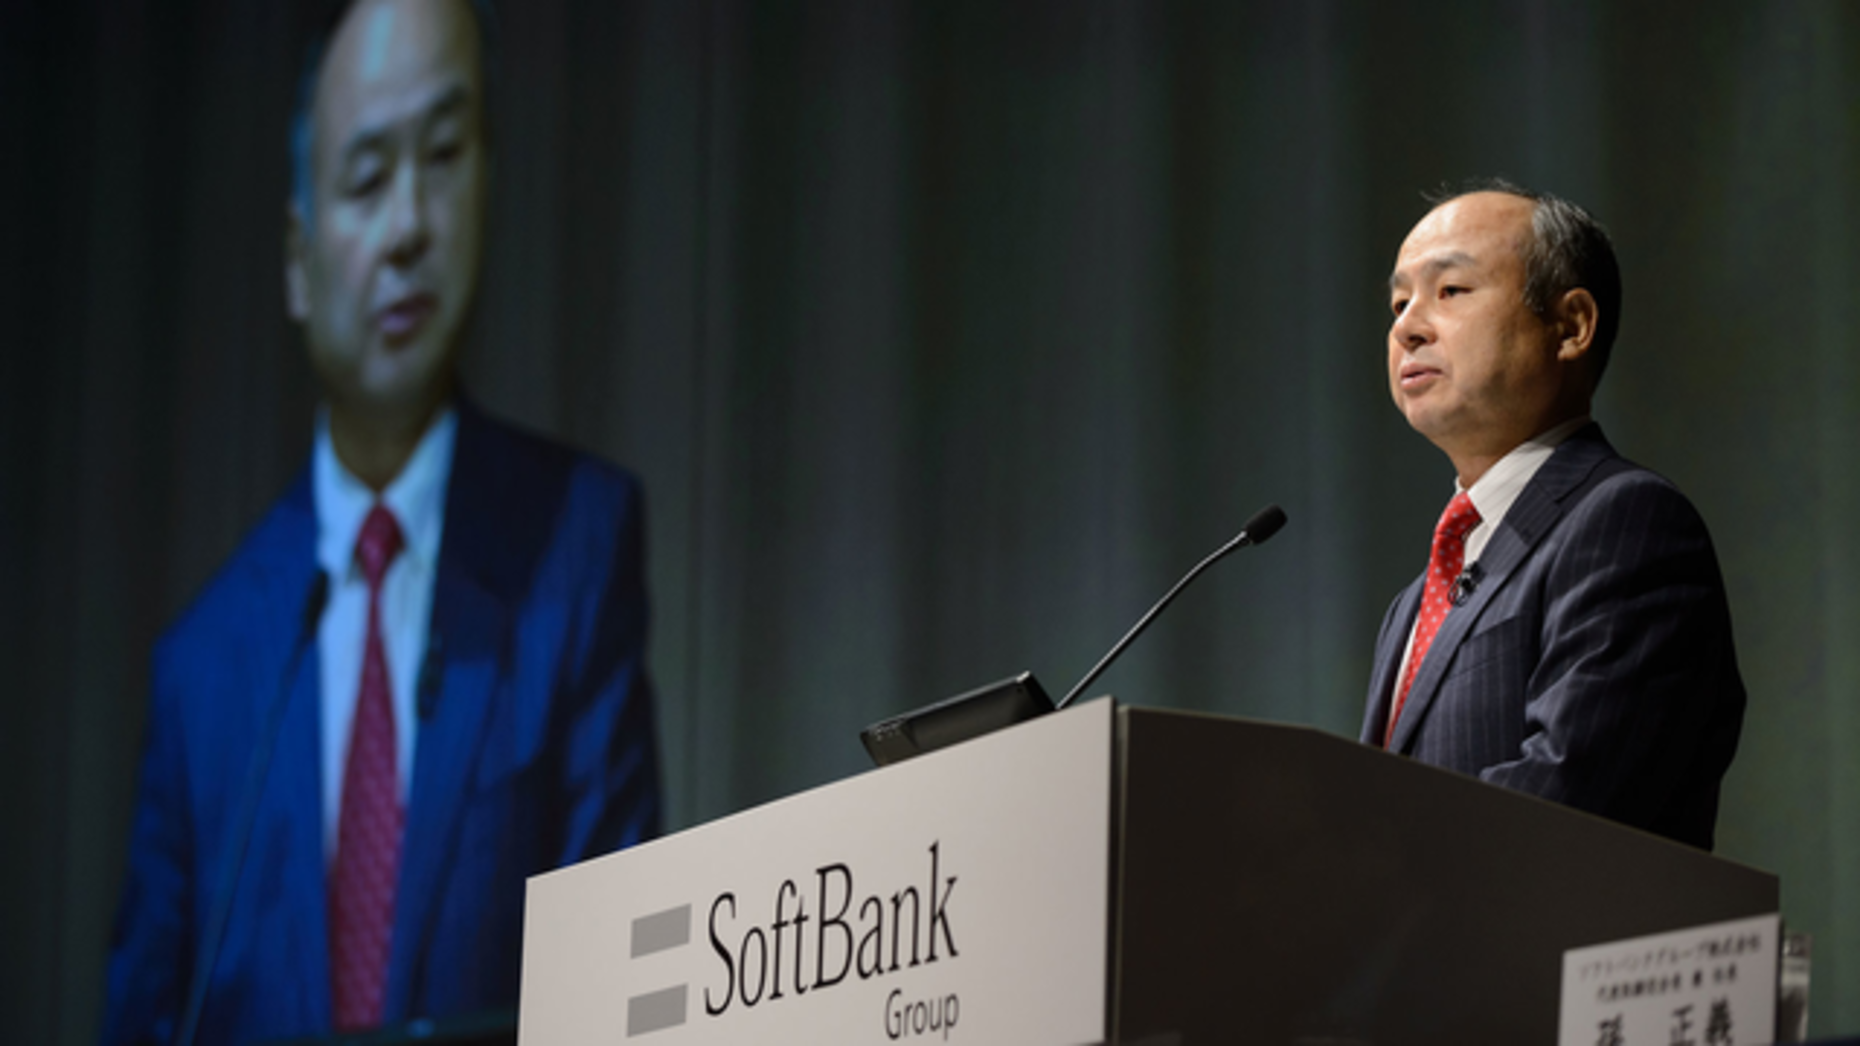 SoftBank CEO Masayoshi Son. Photo by Bloomberg.